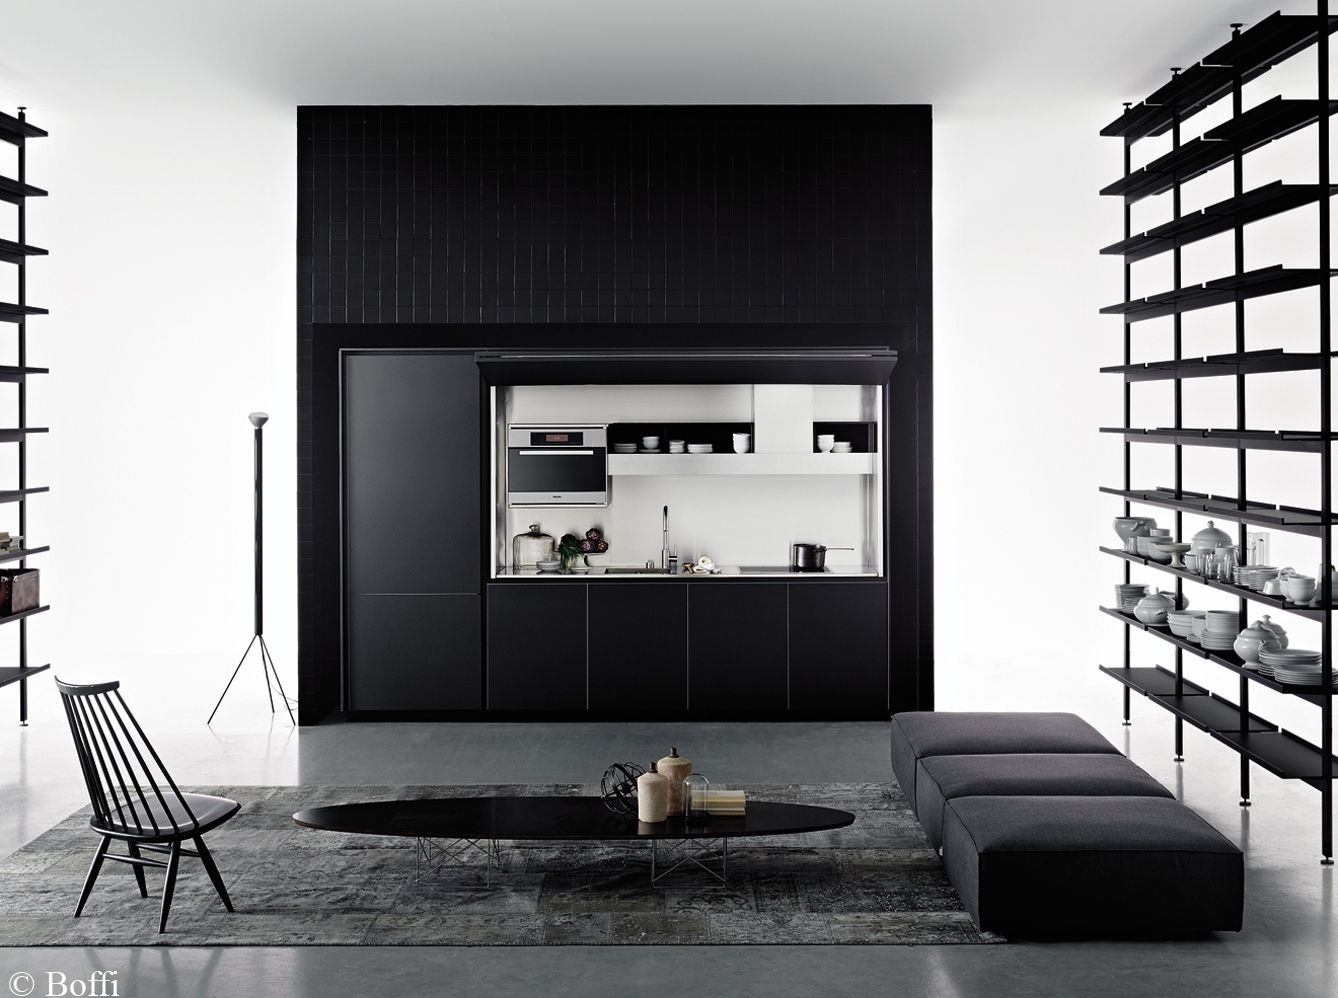 id es d co pour une cuisine chic et l gante elle d coration. Black Bedroom Furniture Sets. Home Design Ideas